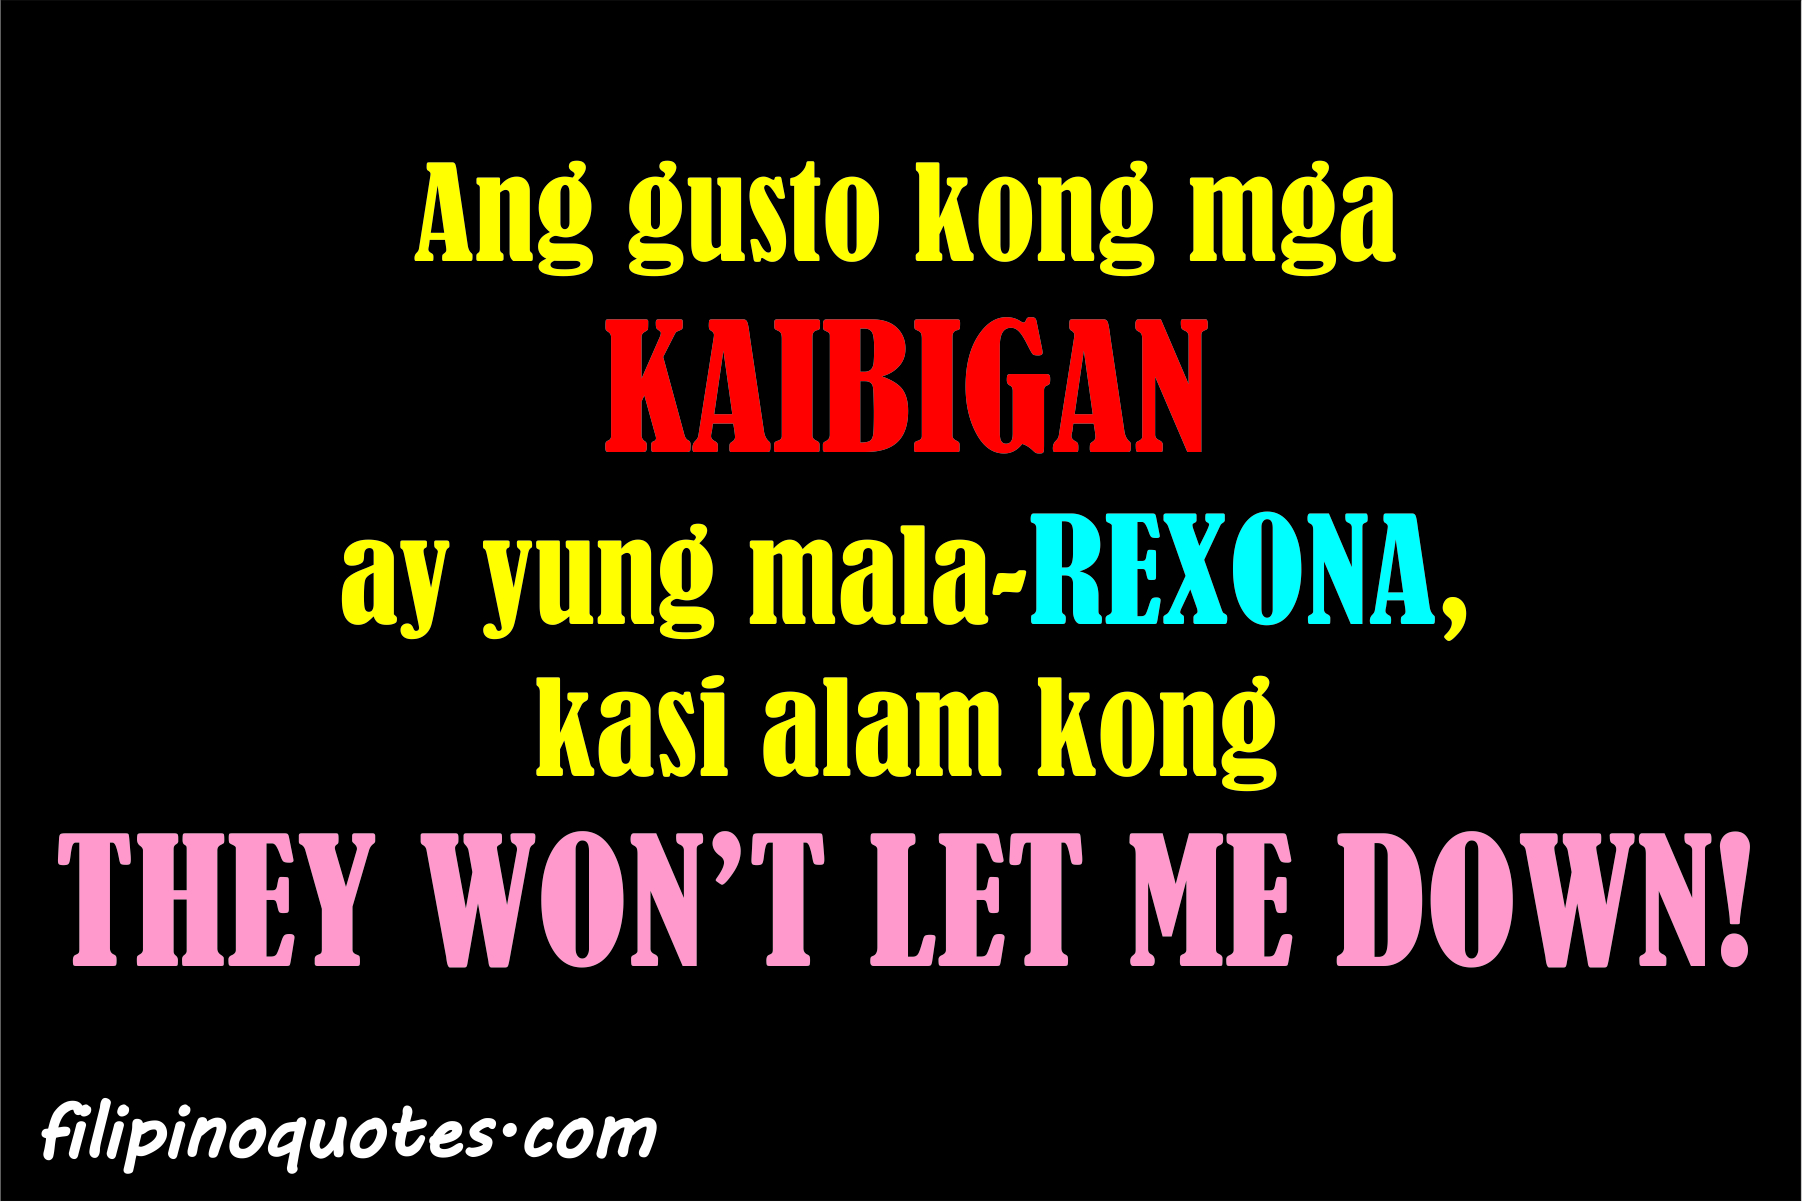 Quotes About Tagalog Friendship Tagalog Quotes And Say...